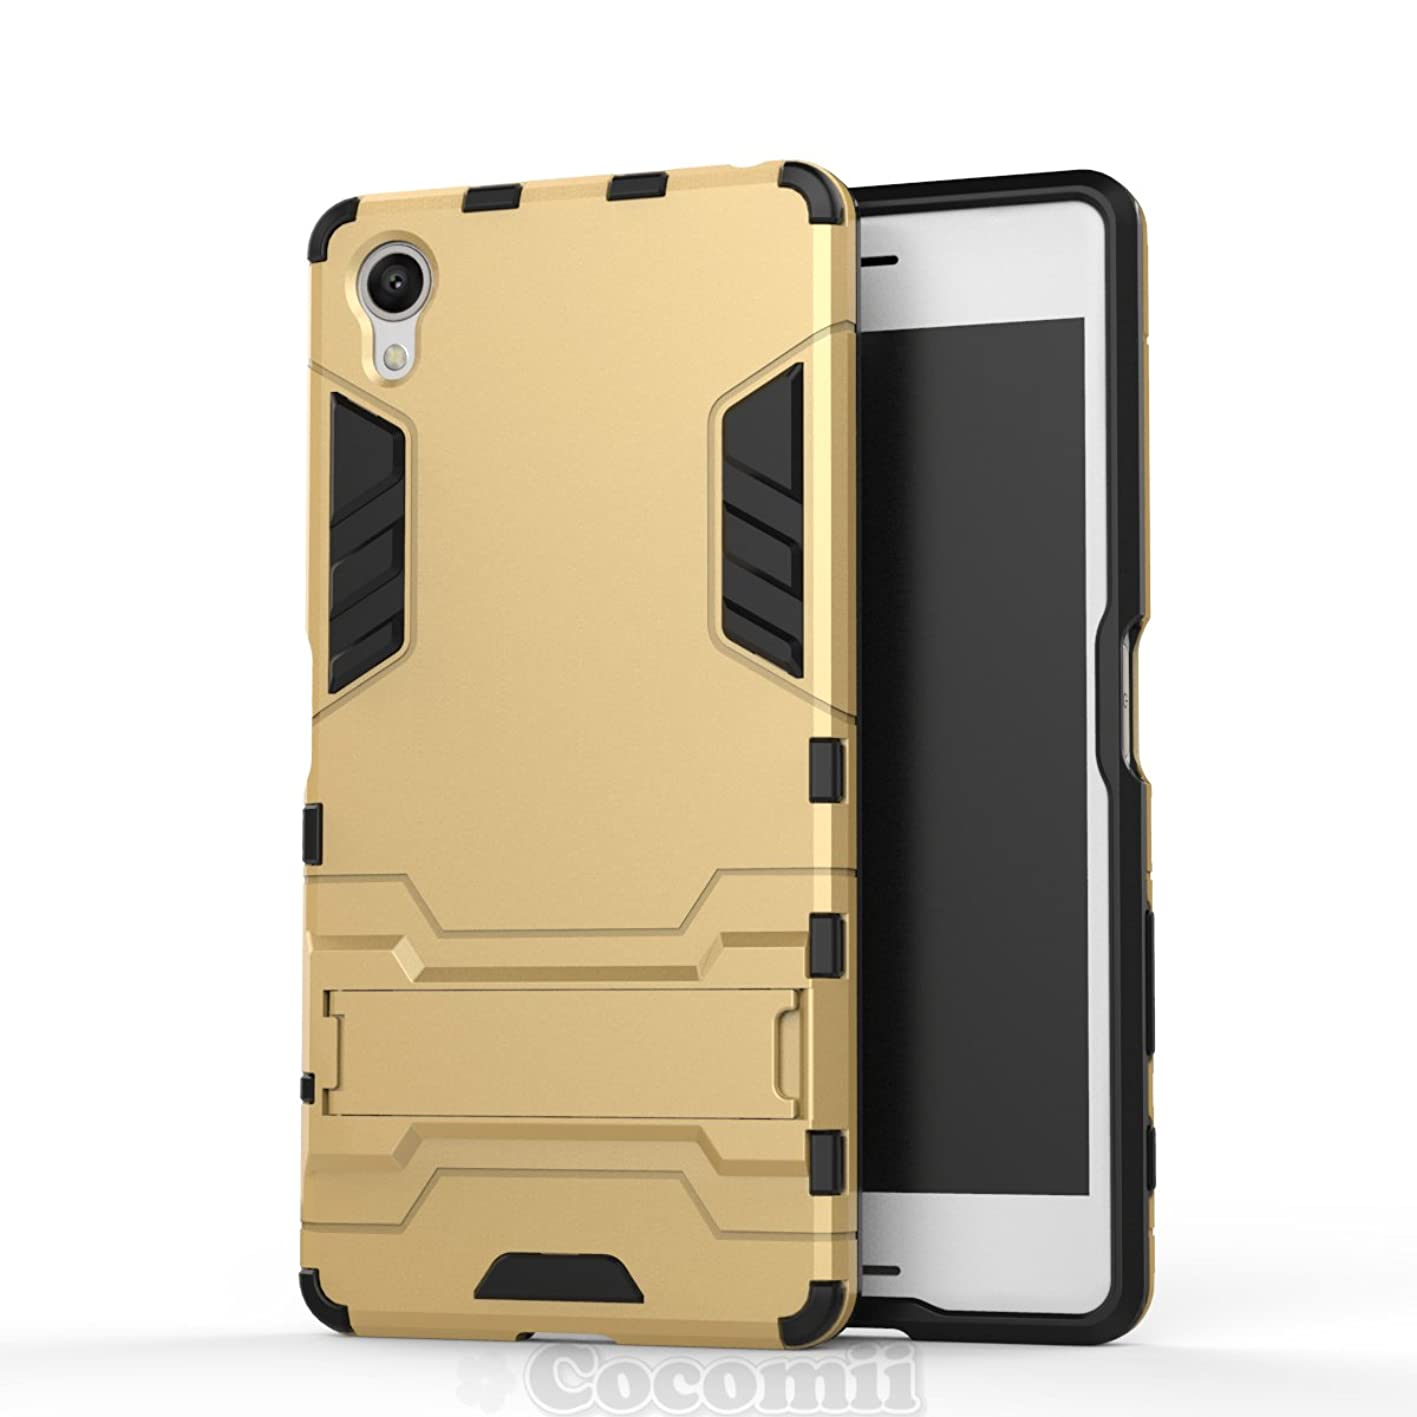 Cocomii Iron Man Armor Sony Xperia X Case NEW [Heavy Duty] Premium Tactical Grip Kickstand Shockproof Hard Bumper Shell [Military Defender] Full Body Dual Layer Rugged Cover for Sony Xperia X (I.Gold) letadeptmhi498